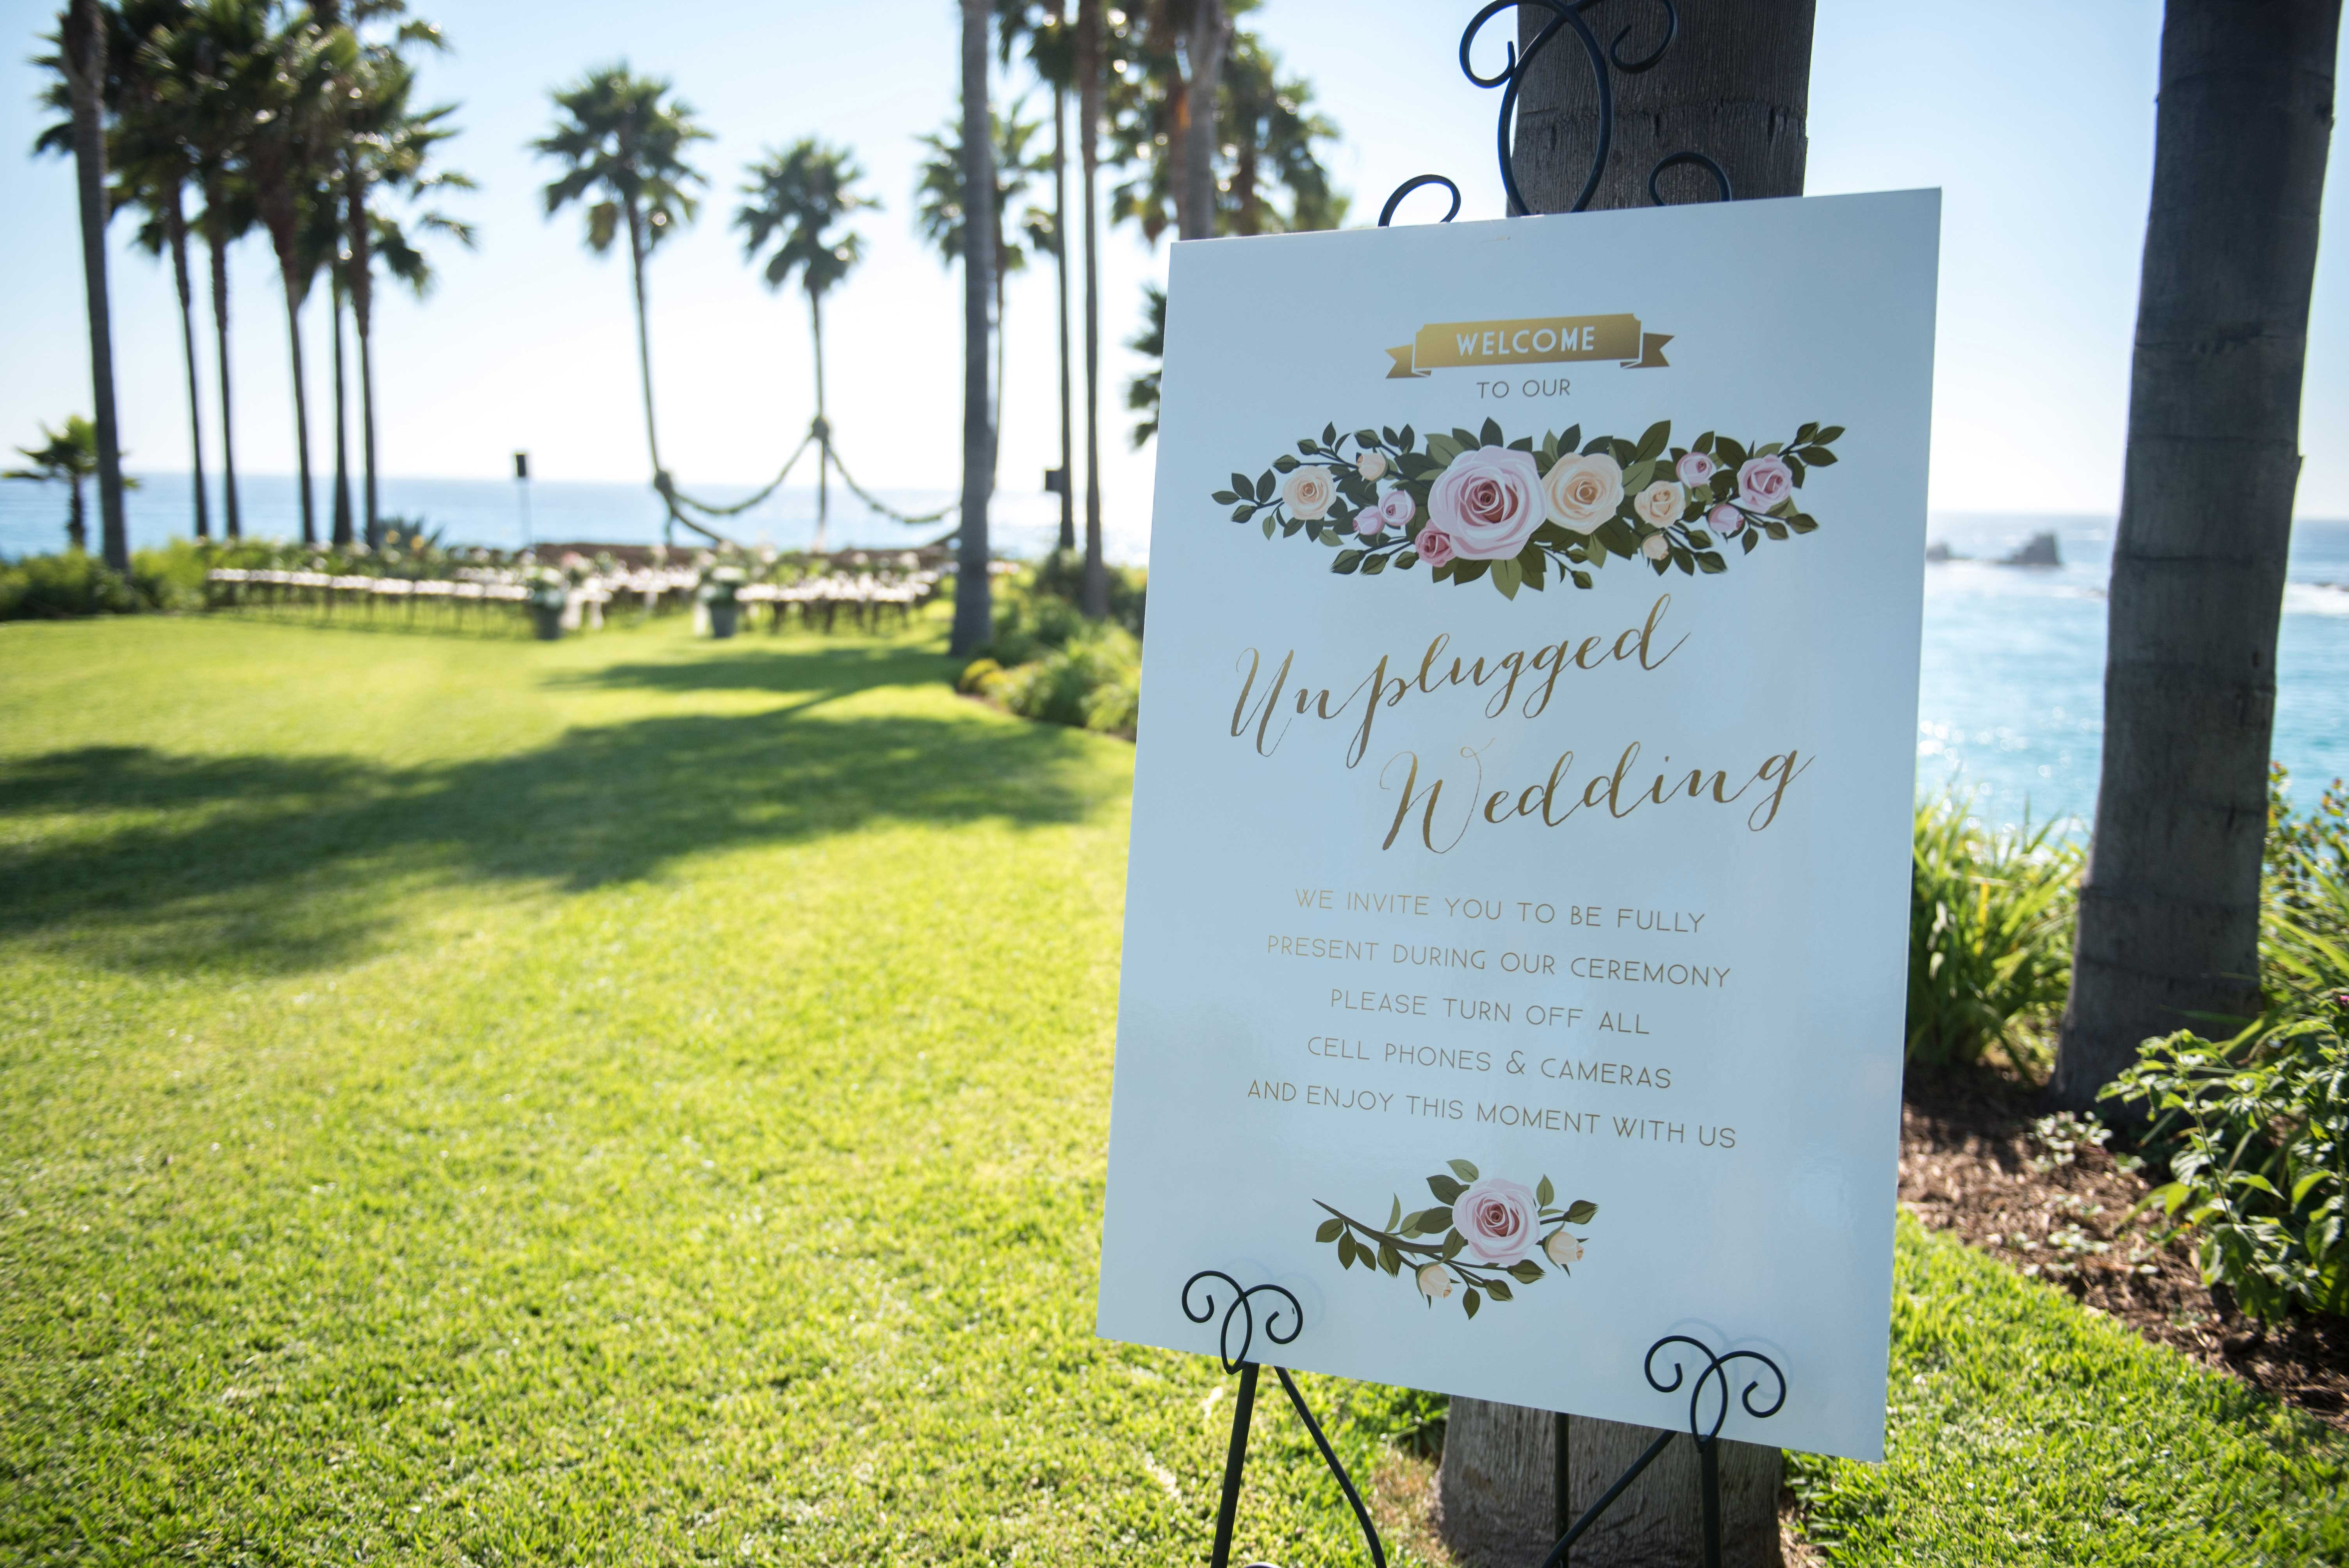 Unplugged wedding ceremony sign on grass lawn